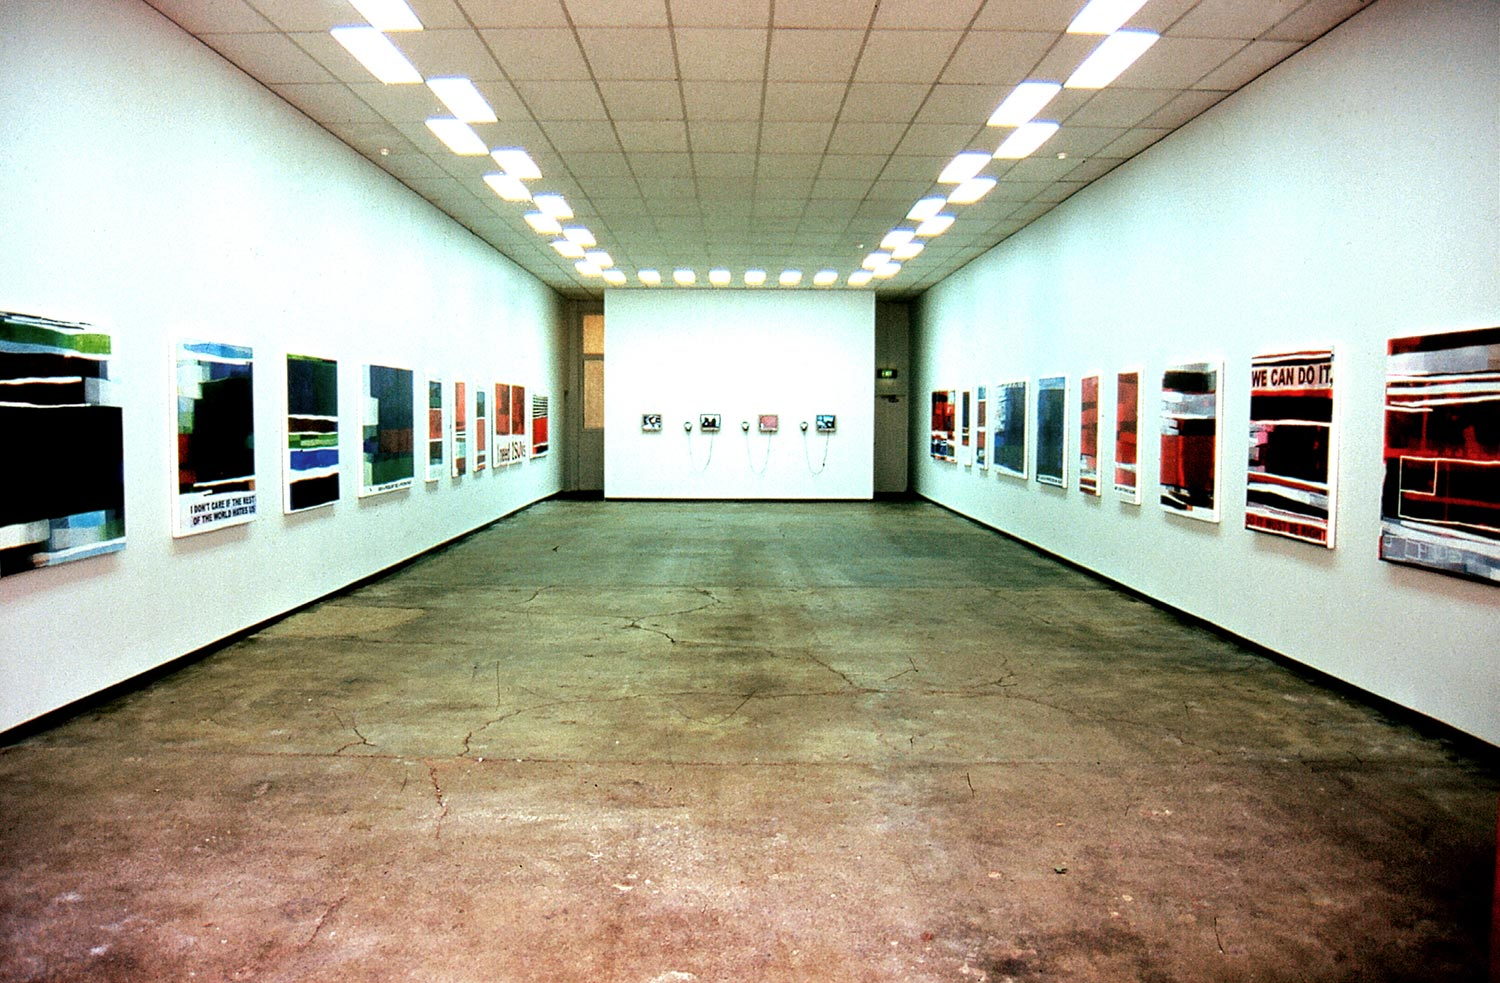 00_mark-gerada_its-all-about-us_exhibition.jpg